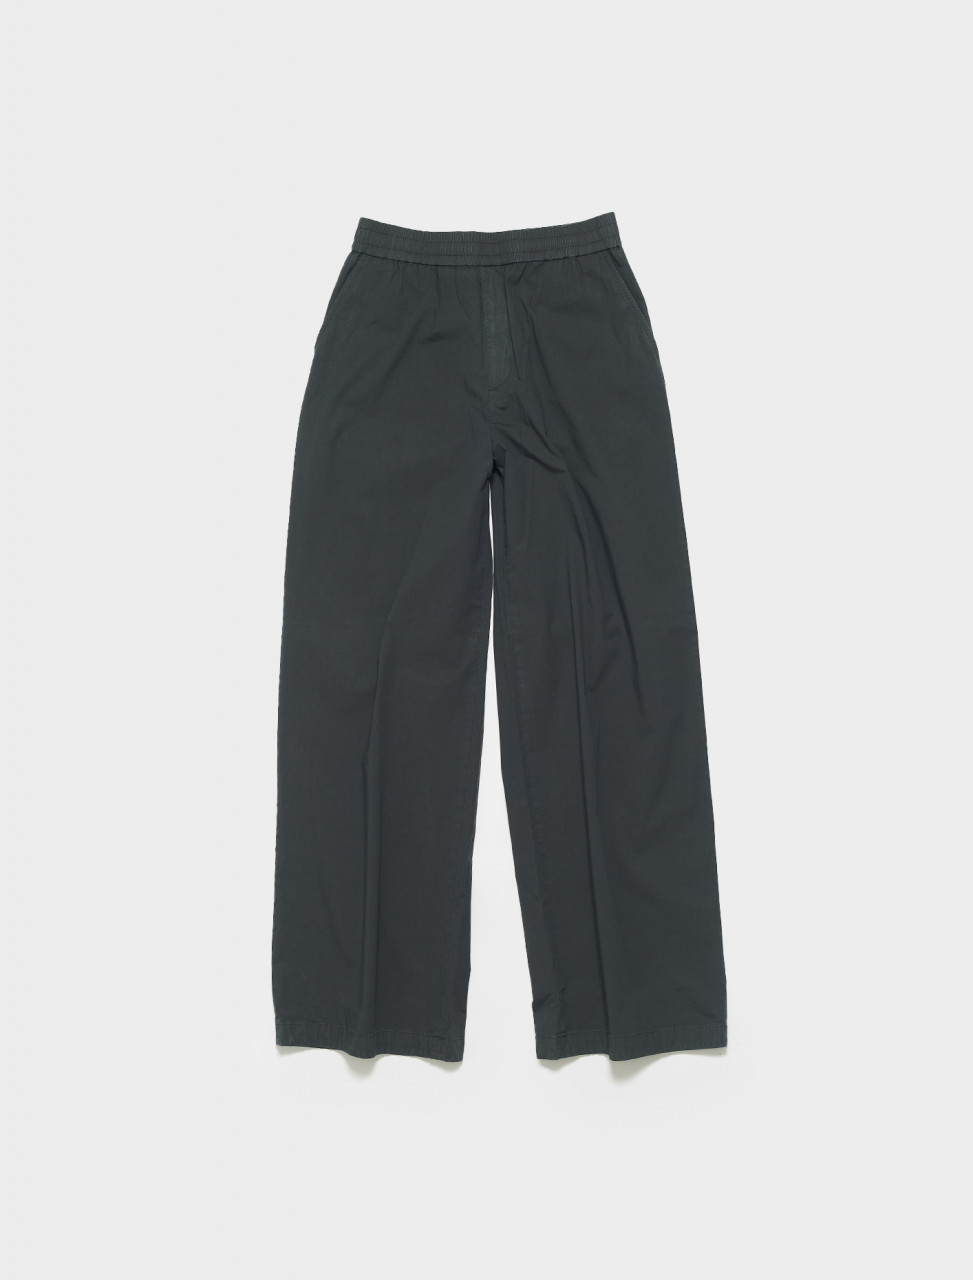 BK0380-AA2 ACNE STUDIOS PASCAL WIDE LEG TROUSERS IN ANTHRACITE GREY